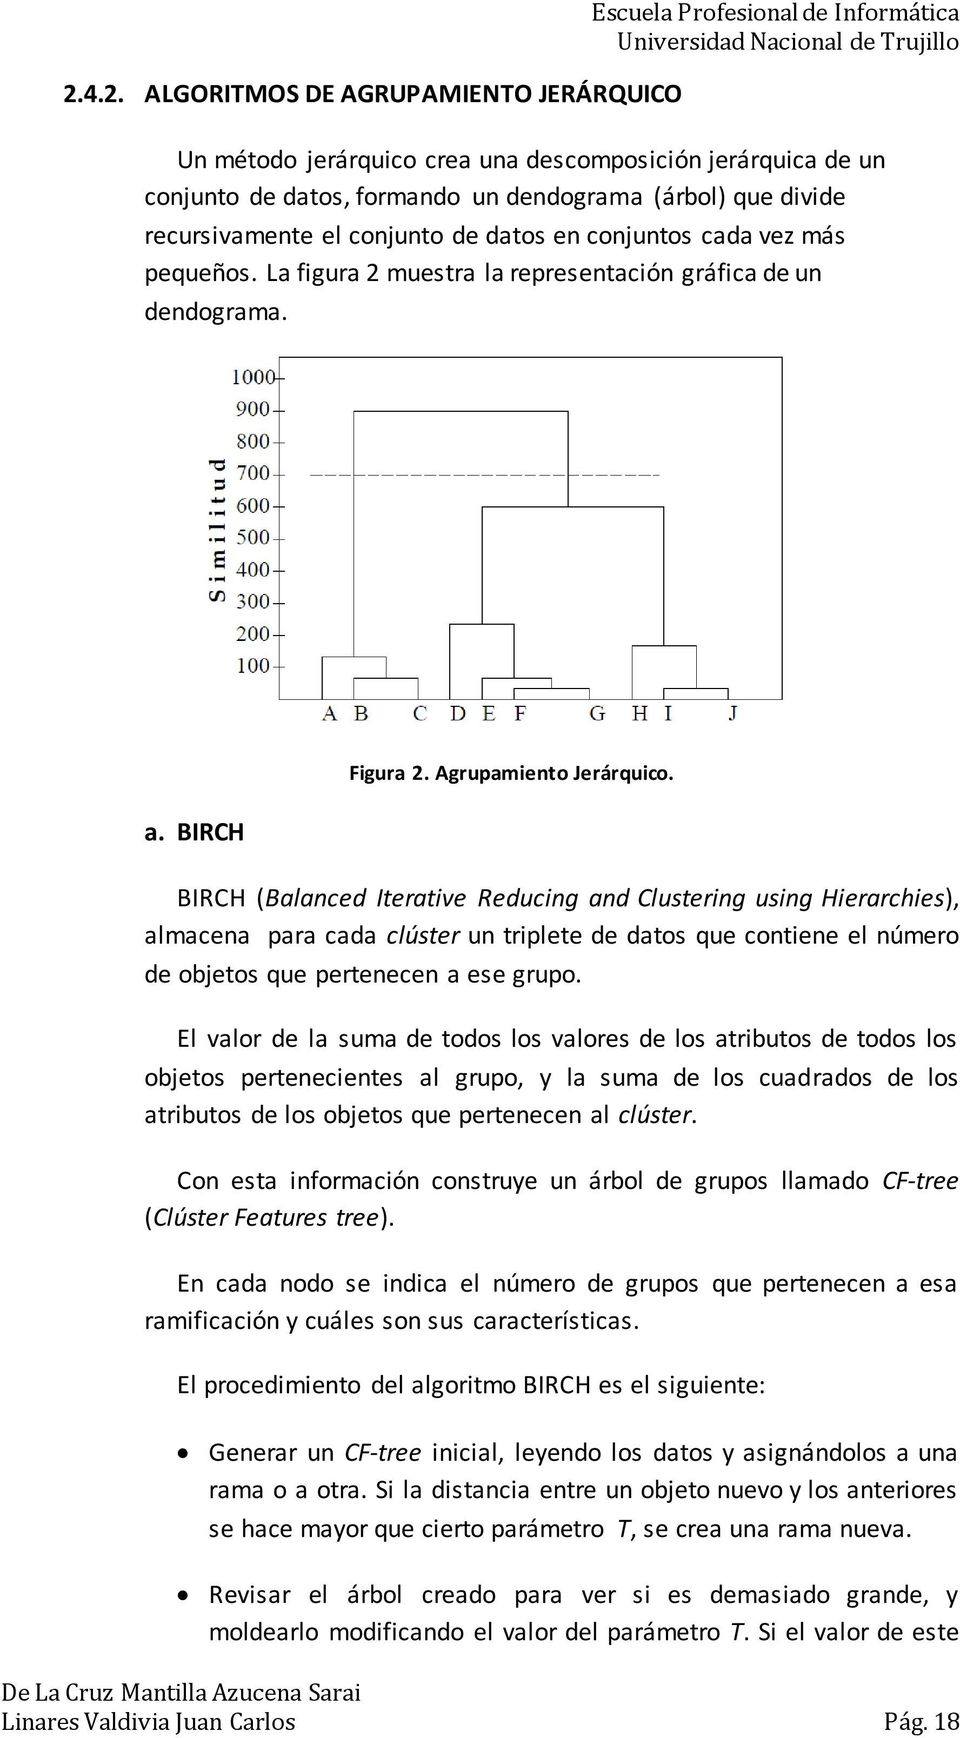 BIRCH (Balanced Iterative Reducing and Clustering using Hierarchies), almacena para cada clúster un triplete de datos que contiene el número de objetos que pertenecen a ese grupo.